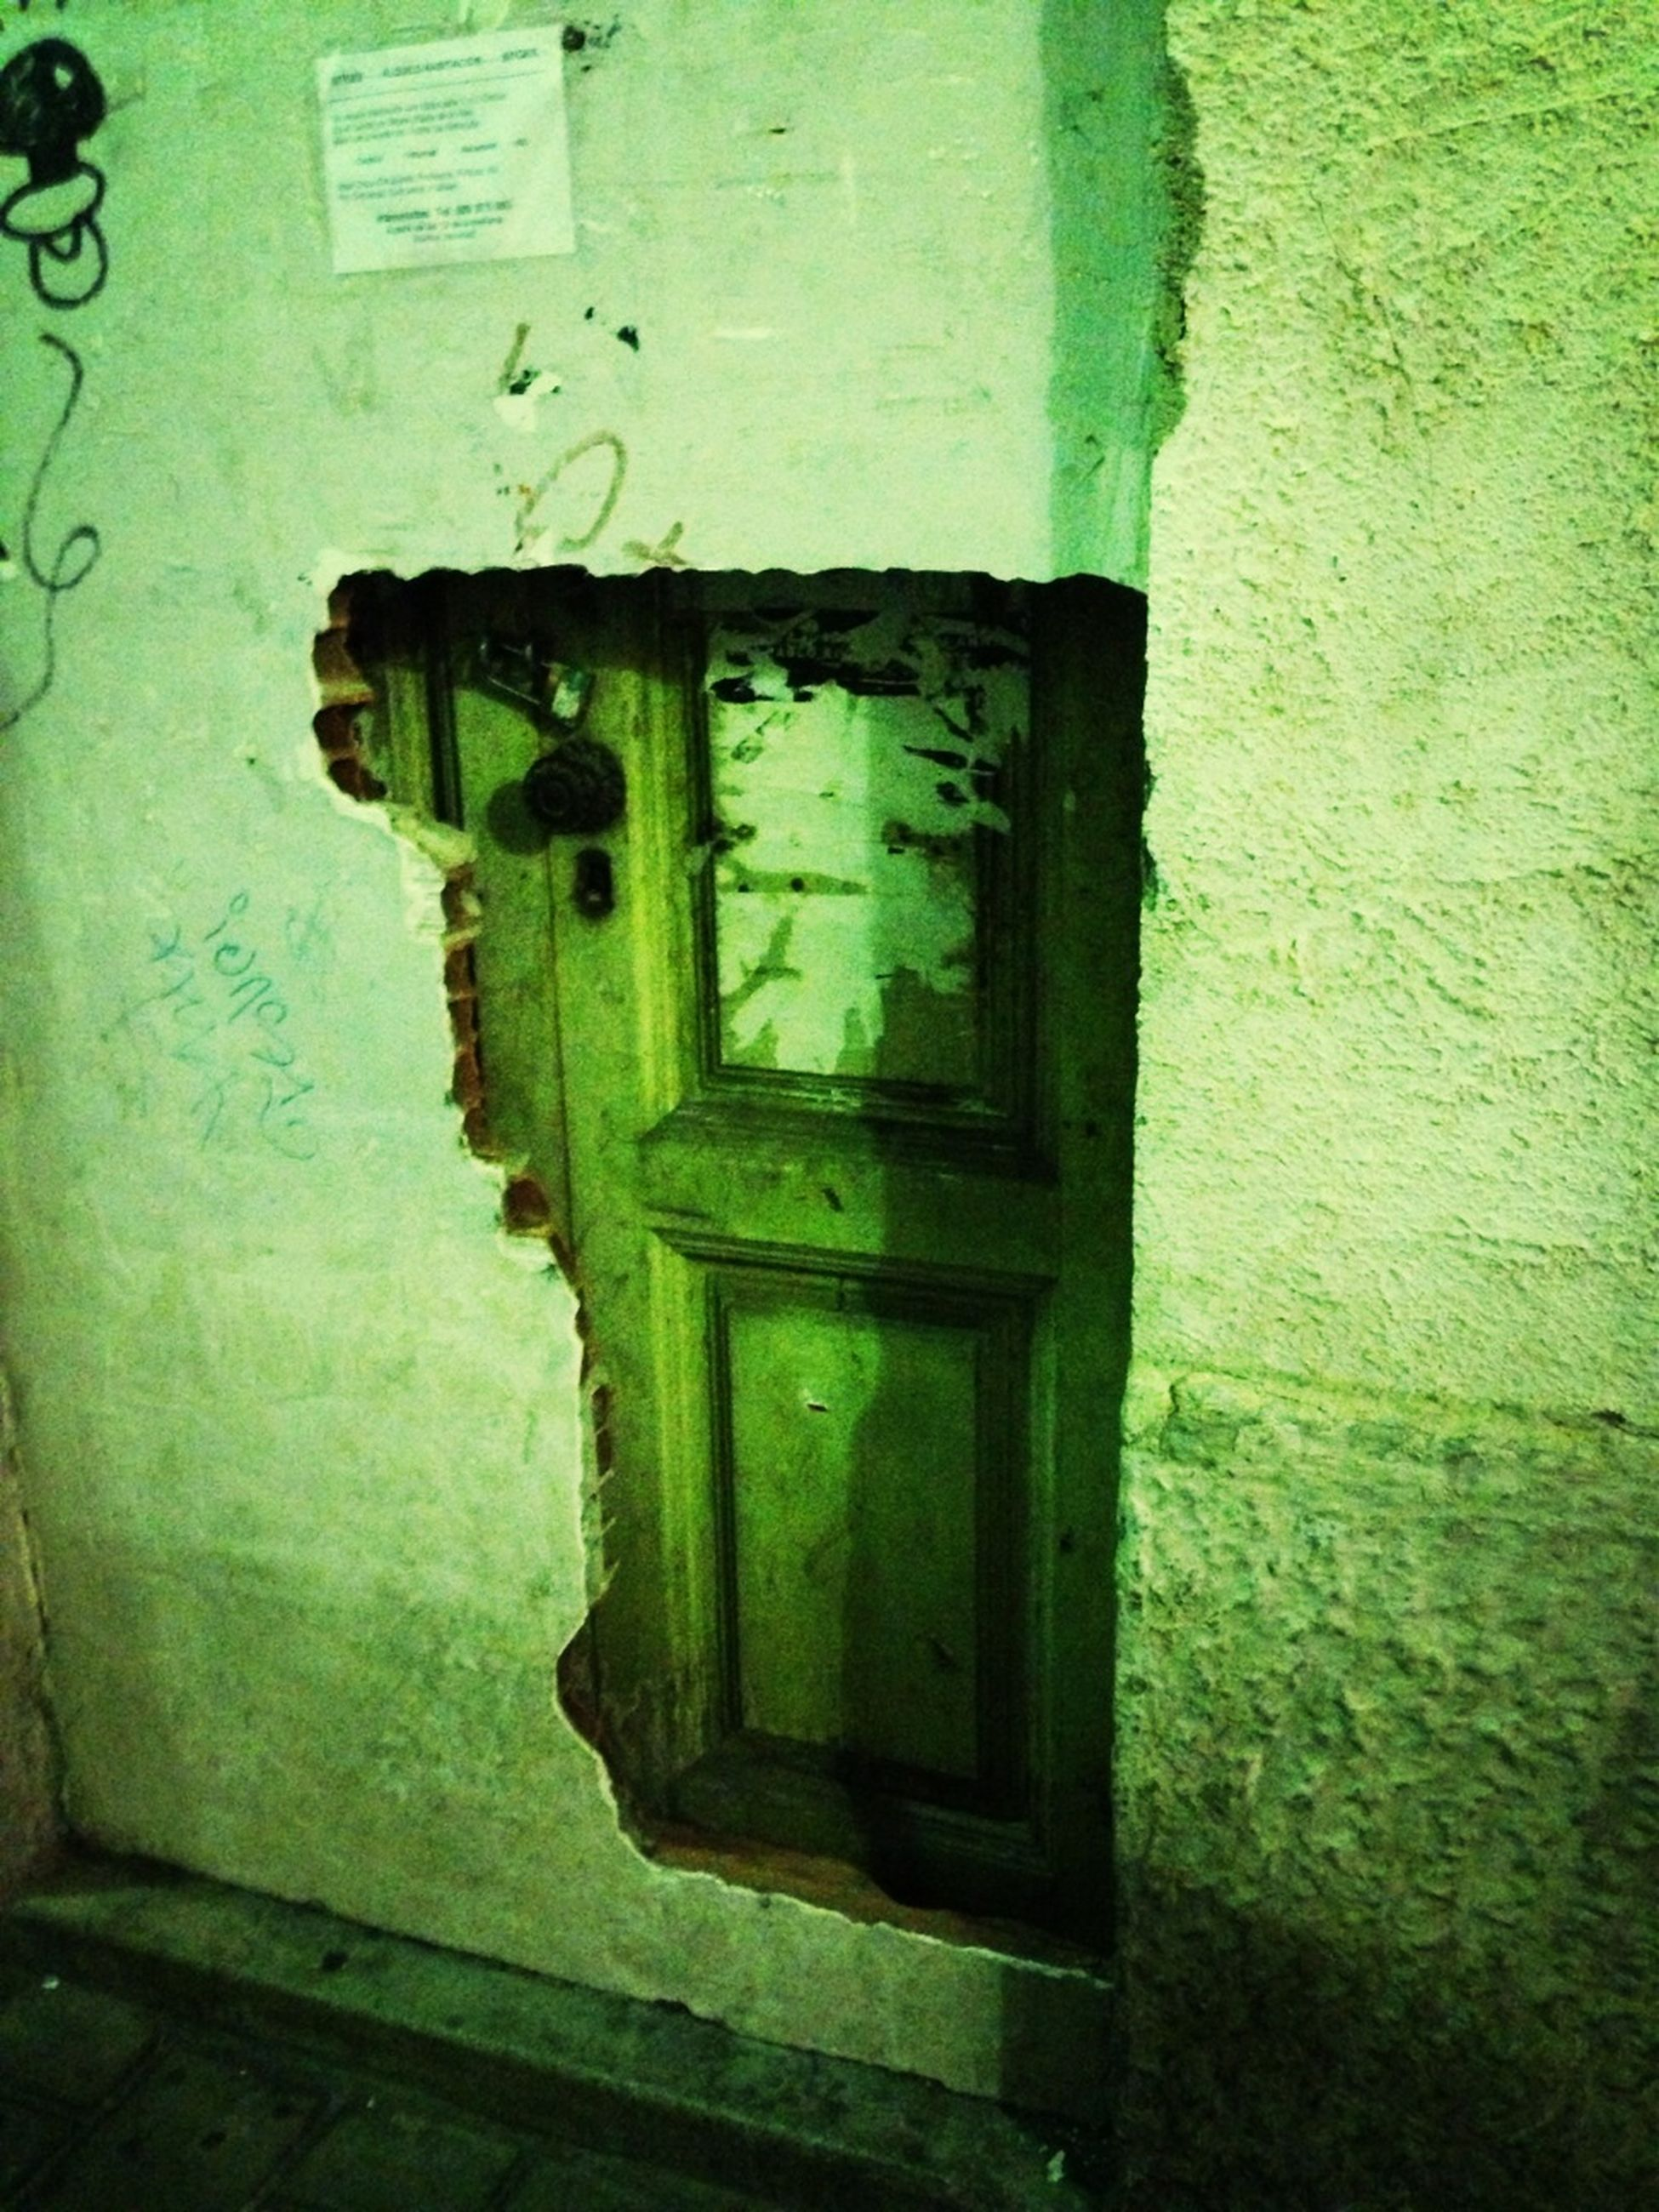 door, wall - building feature, built structure, architecture, green color, closed, old, close-up, building exterior, wall, protection, safety, security, no people, day, outdoors, number, metal, old-fashioned, entrance